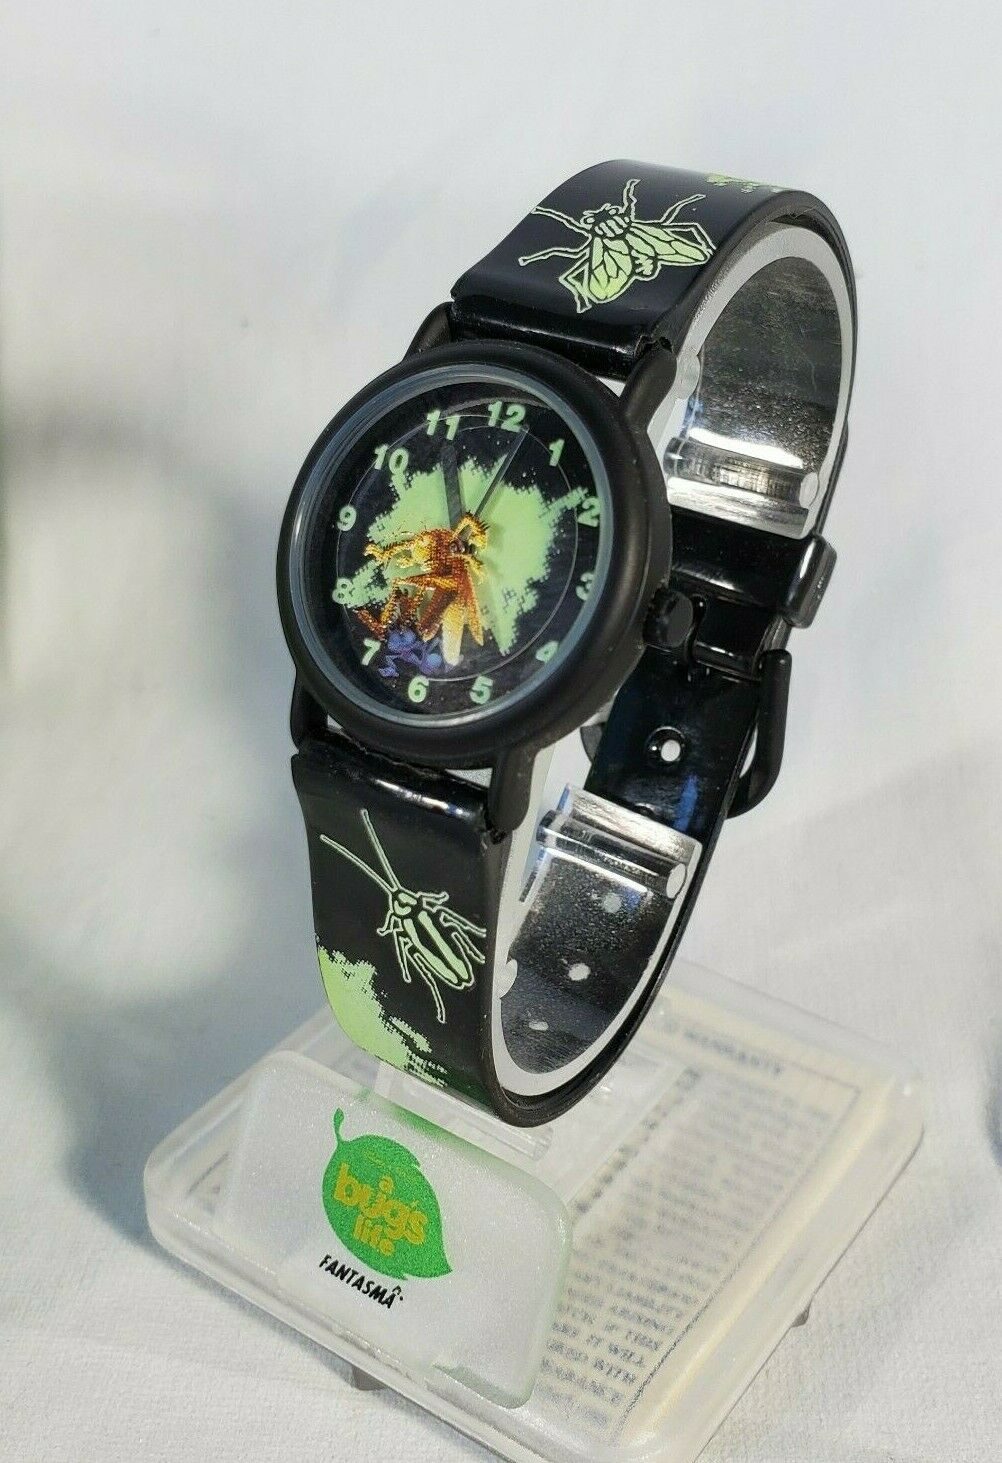 Disney Pixar A Bugs Life Hopper Analog Watch by Fantasma - $24.70